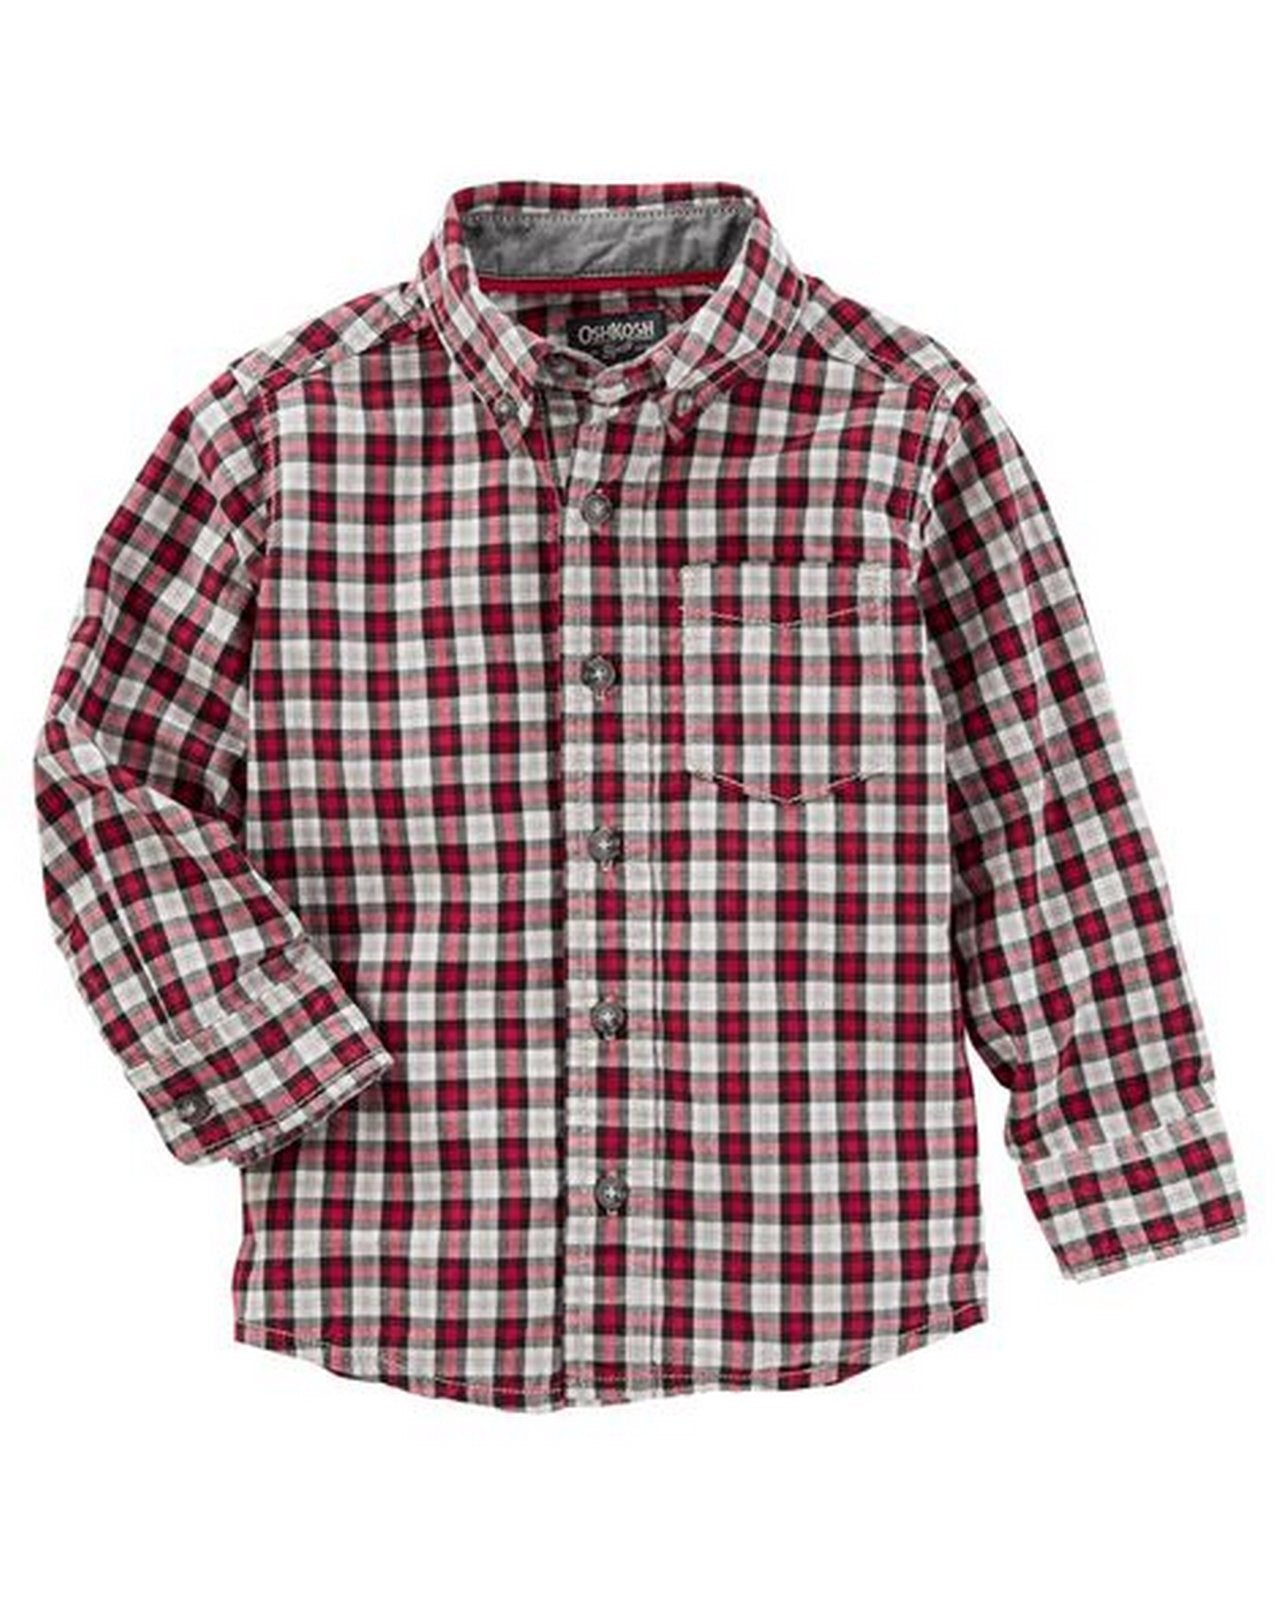 OshKosh Plaid Button-Front Shirt  Modelo 32421811